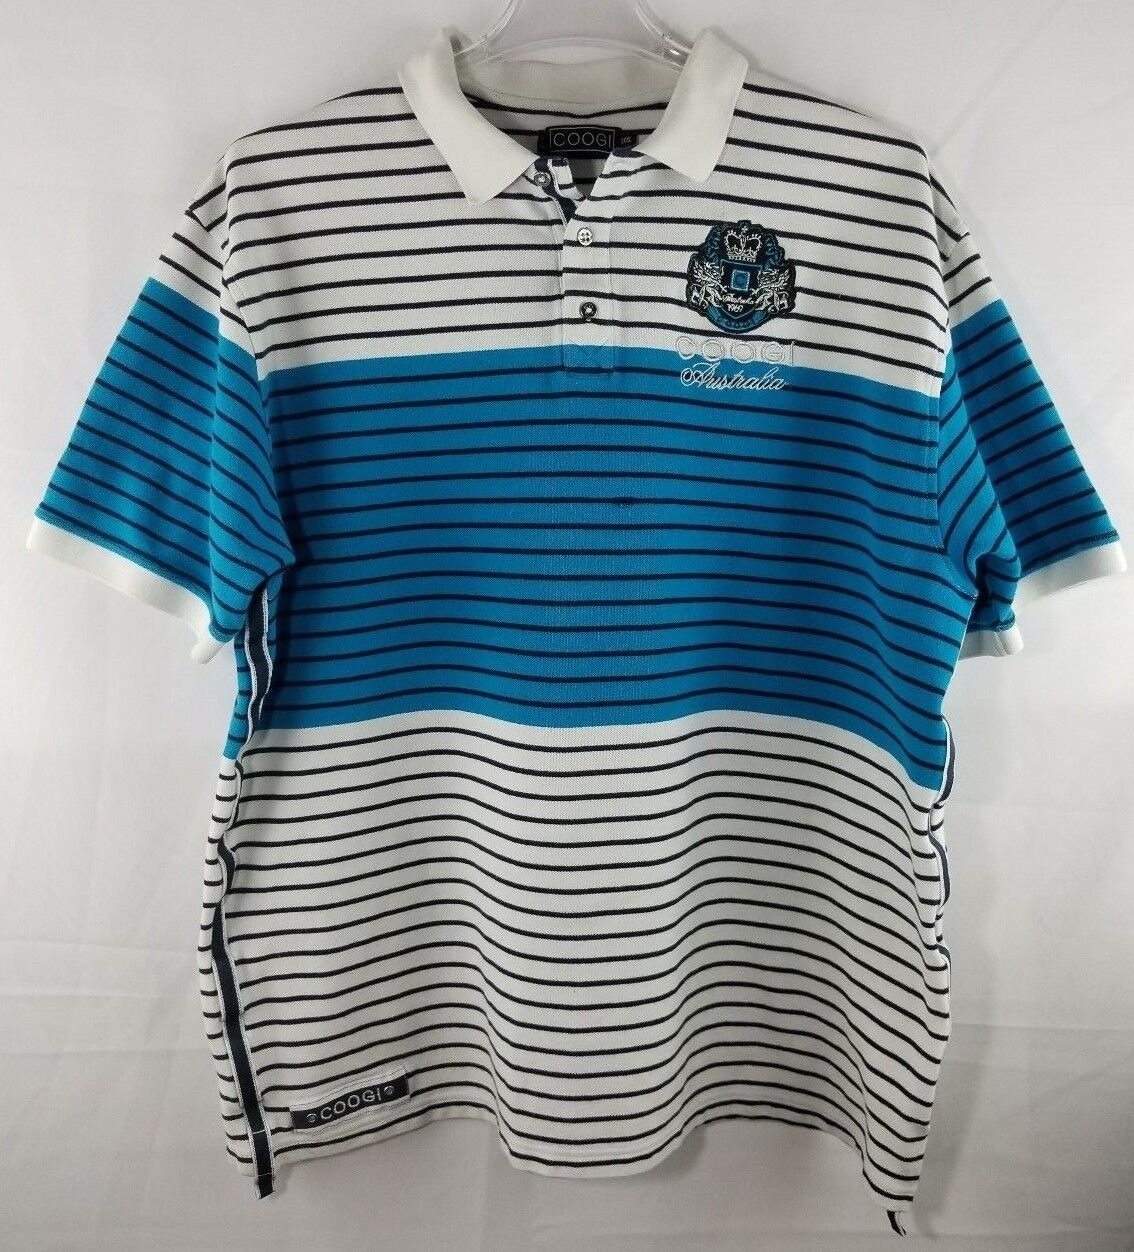 8ca1580d Coogi Mens Polo Pique Stripped Embroidered Badge White bluee Size 3XL